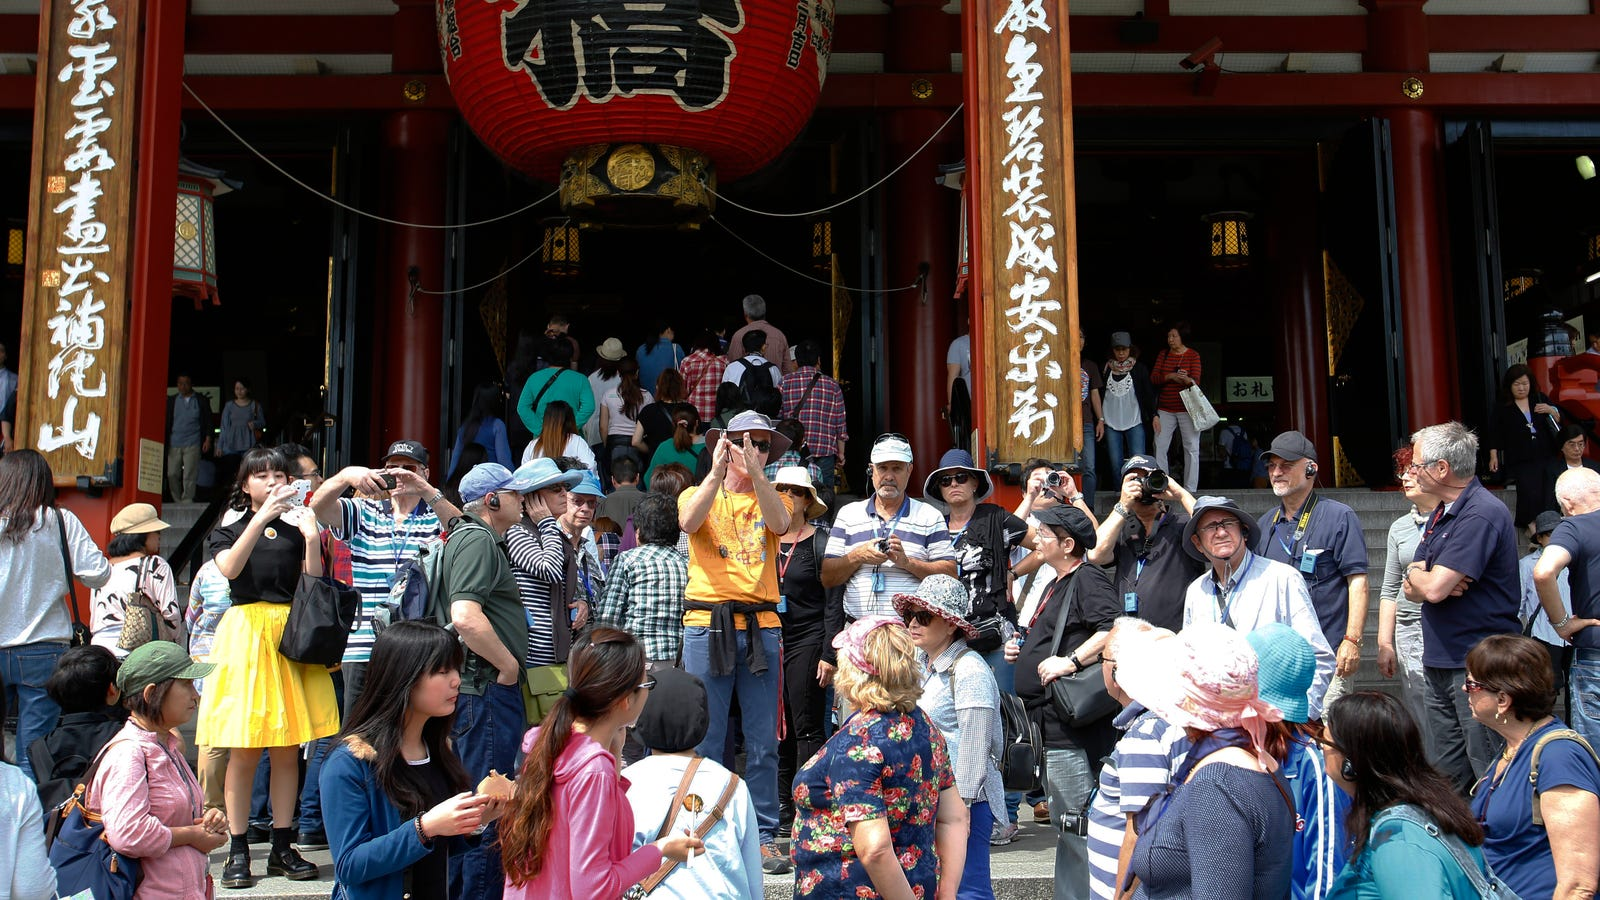 Tourists Are Causing Headaches In Japan